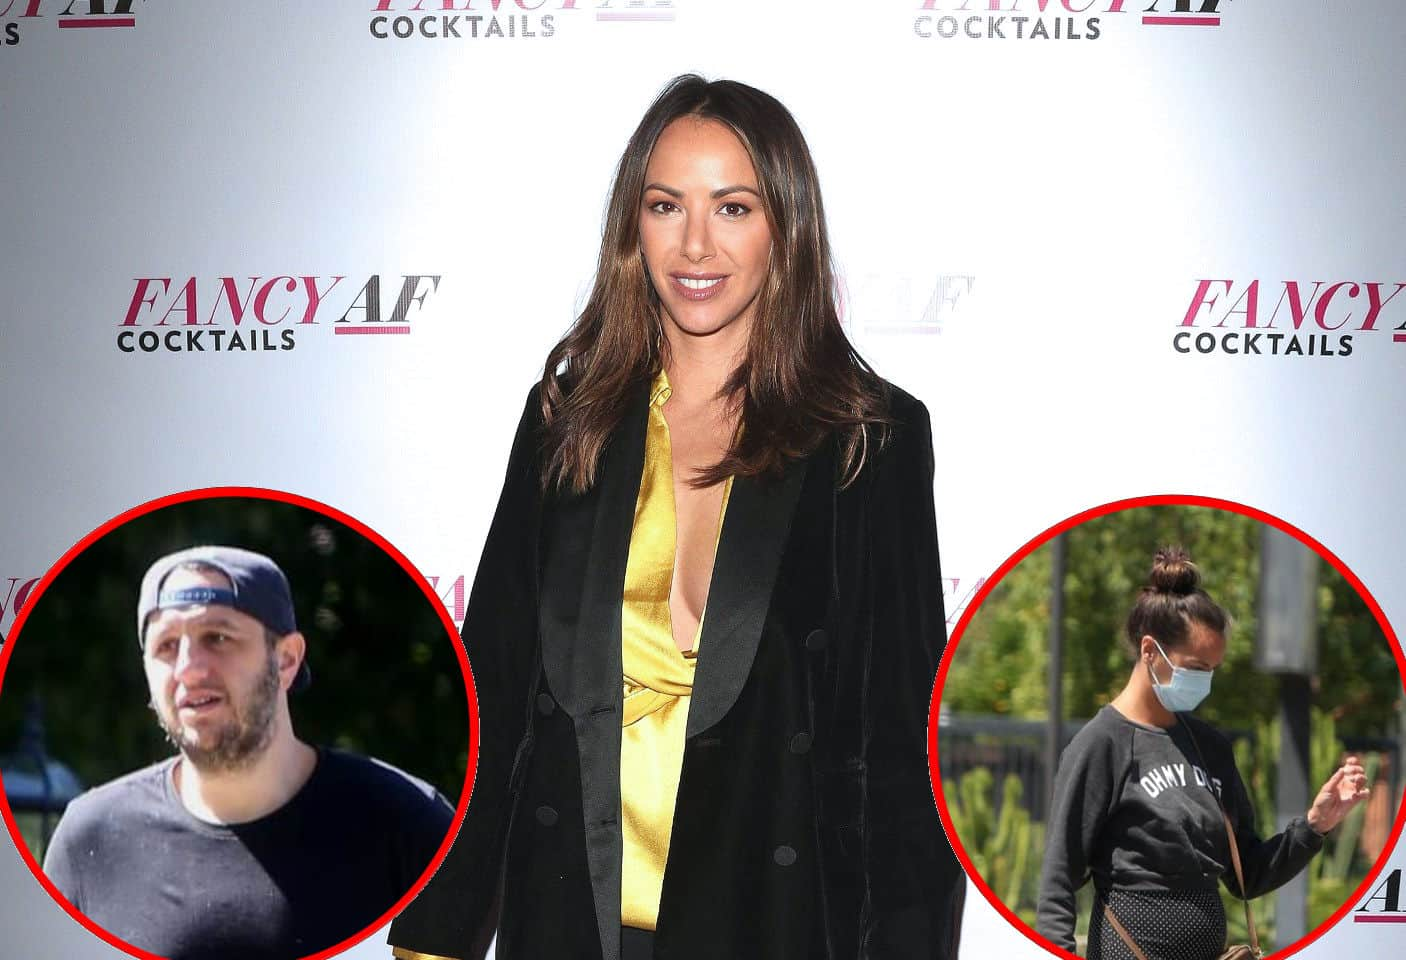 PHOTOS: Vanderpump Rules Star Kristen Doute is Photographed With New Boyfriend Alex Menache Following Report Claiming He is Ready for Marriage and Kids, See the Pics!